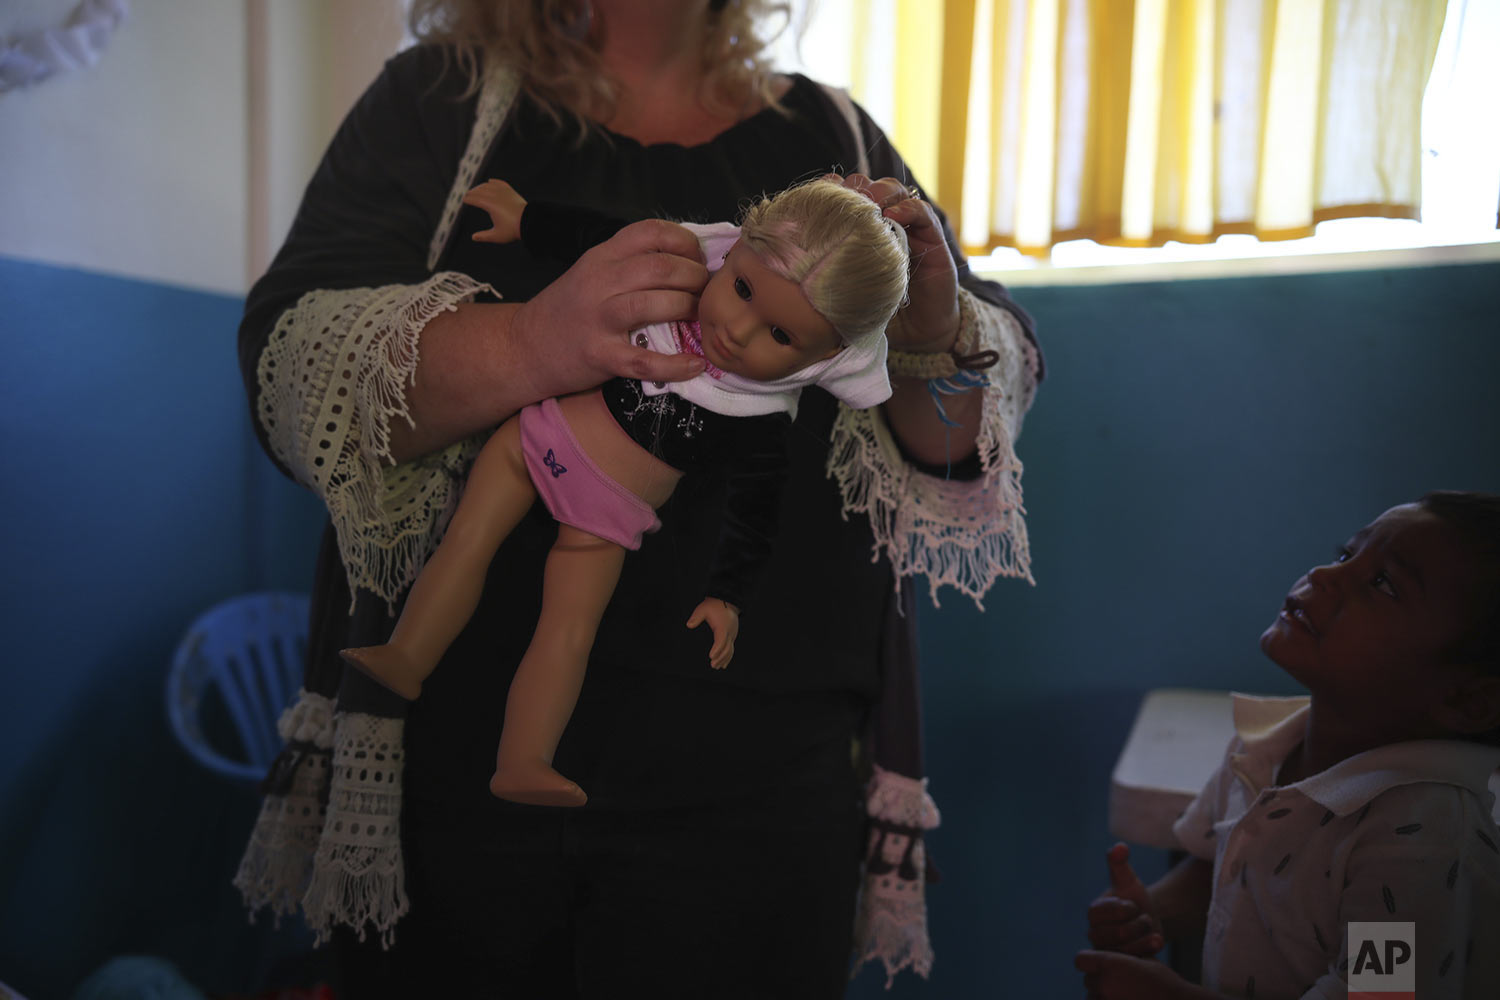 In this May 25, 2019 photo, Mindi Parish Stainer holds a doll during the baby shower for Salvadoran teen migrant Milagro de Jesus Henriquez Ayala, at a meeting hall in Tijuana, Mexico. Parish Stainer has been instrumental in getting the help the pregnant teenager Milagro Henriquez Ayala needed to bring her baby to term. (AP Photo/Emilio Espejel)